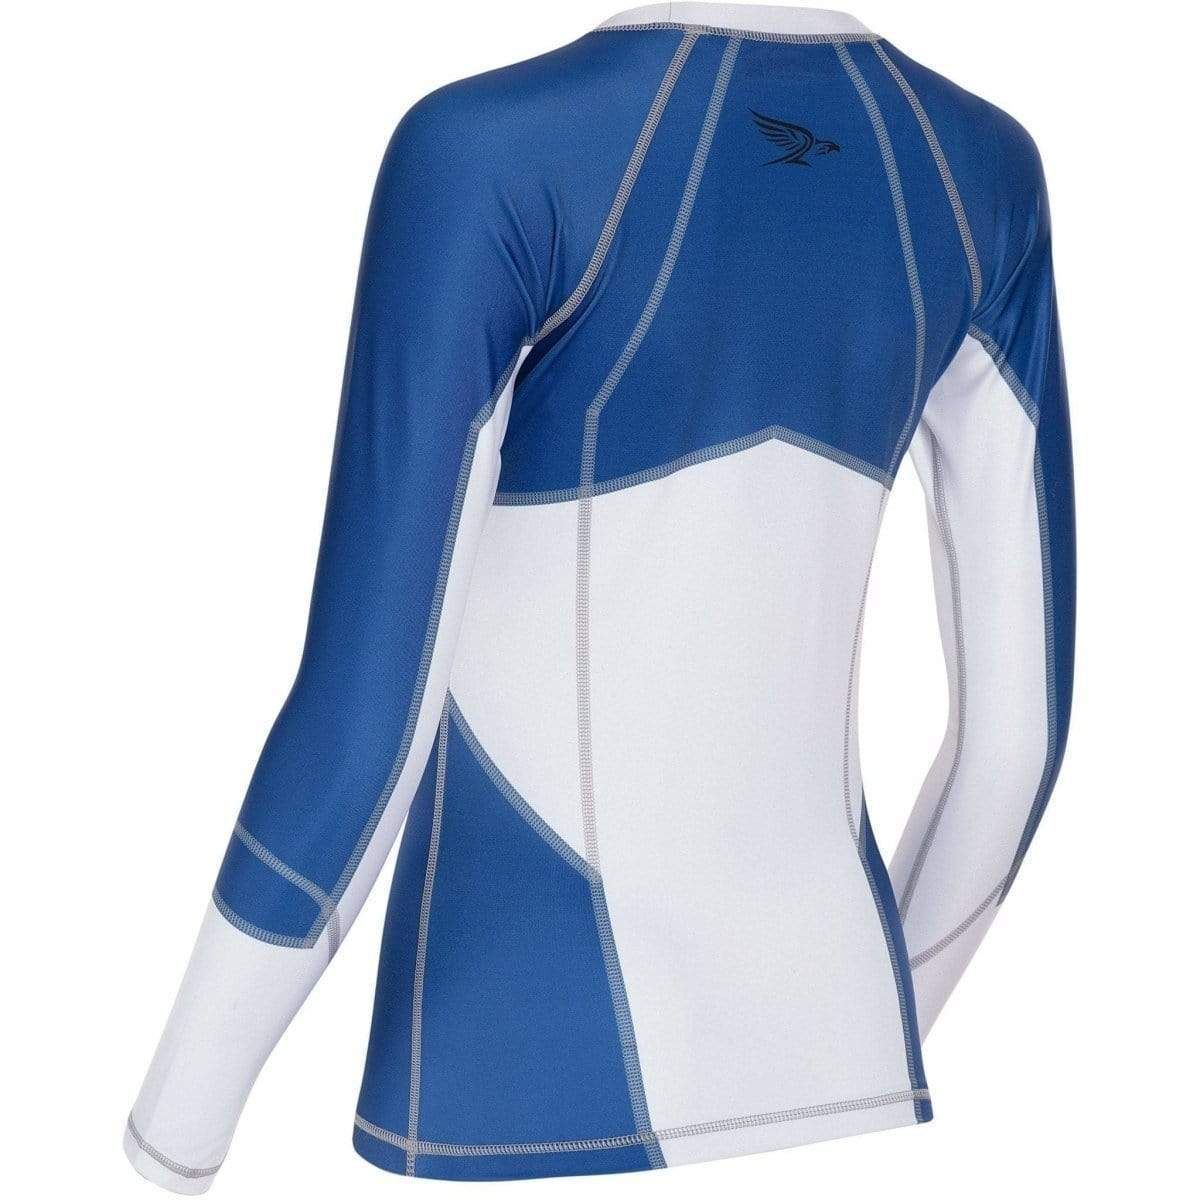 Habrok Rash Guard Transform 2.5 |Rash Guard Women | Full Sleeve